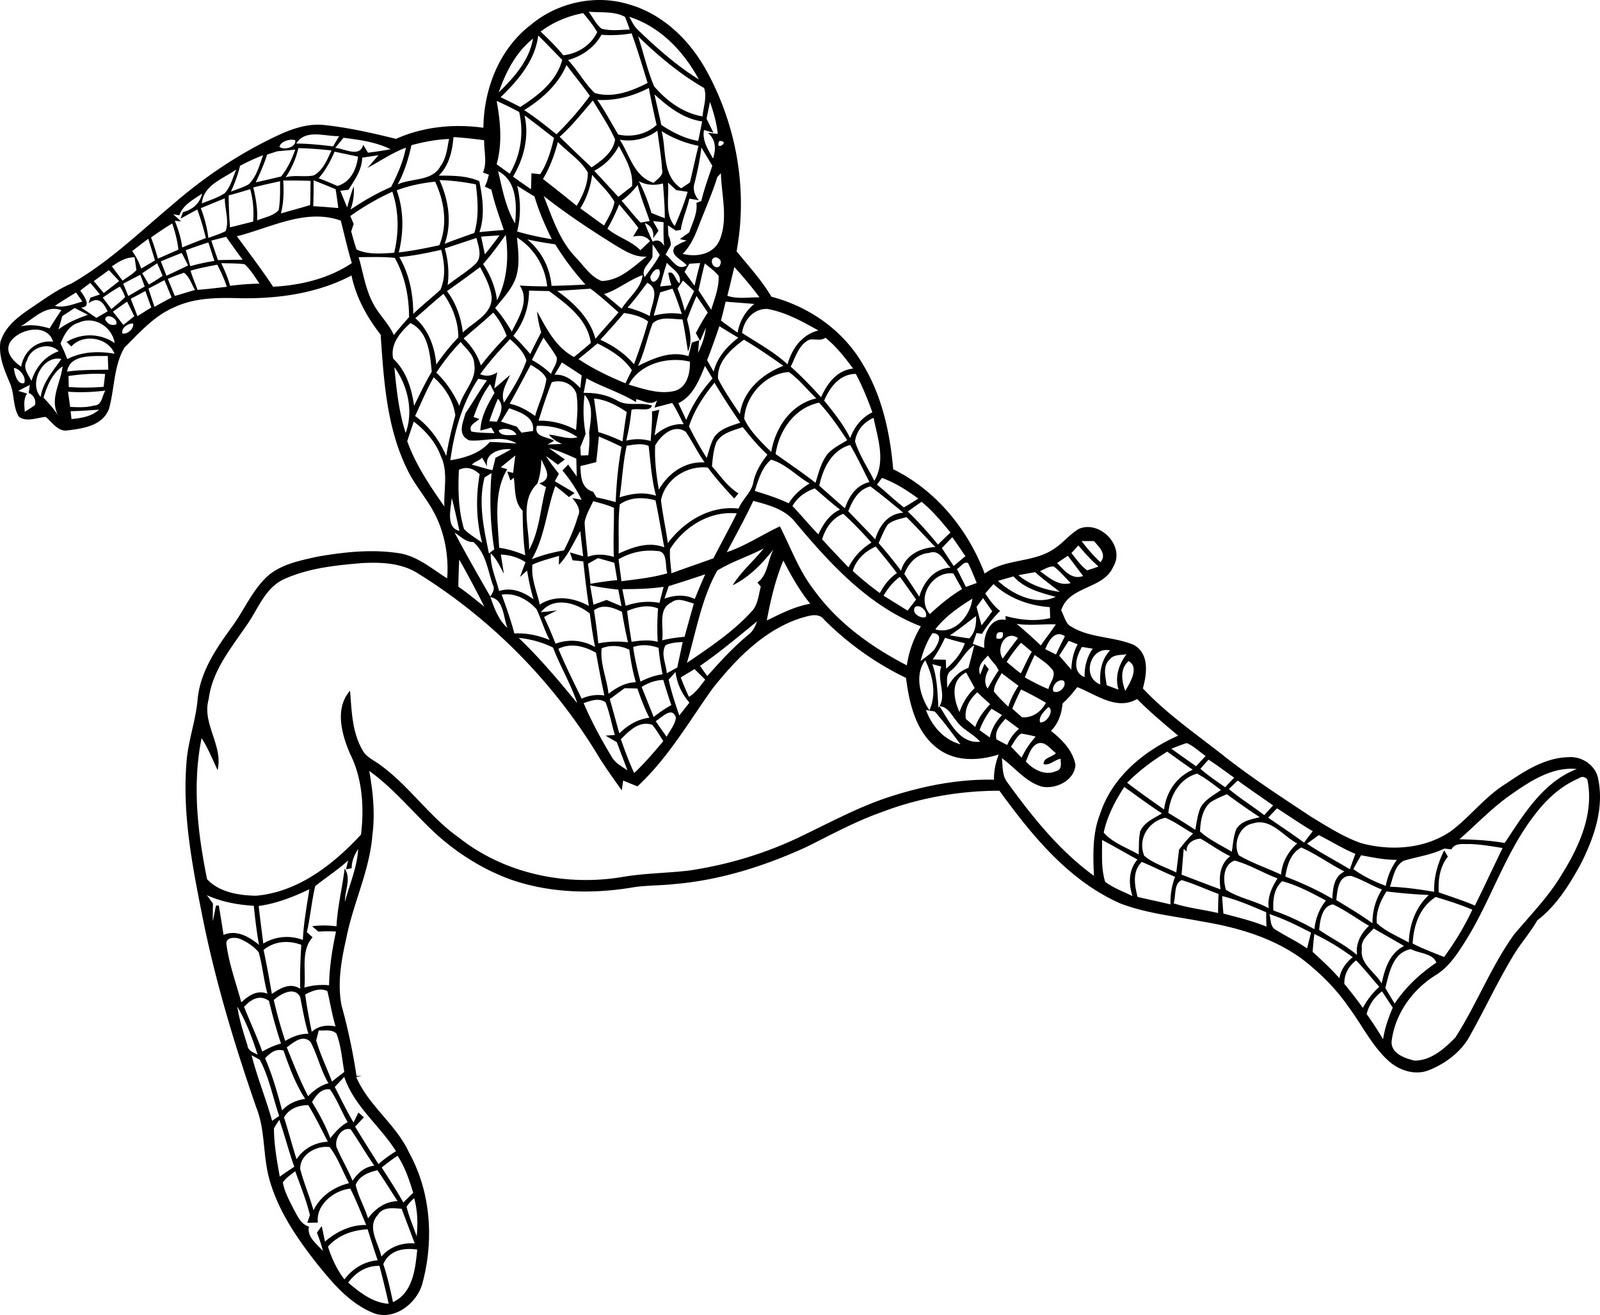 1600x1315 Elegant Superman Coloring Pages For Adults Superman Coloring Pages